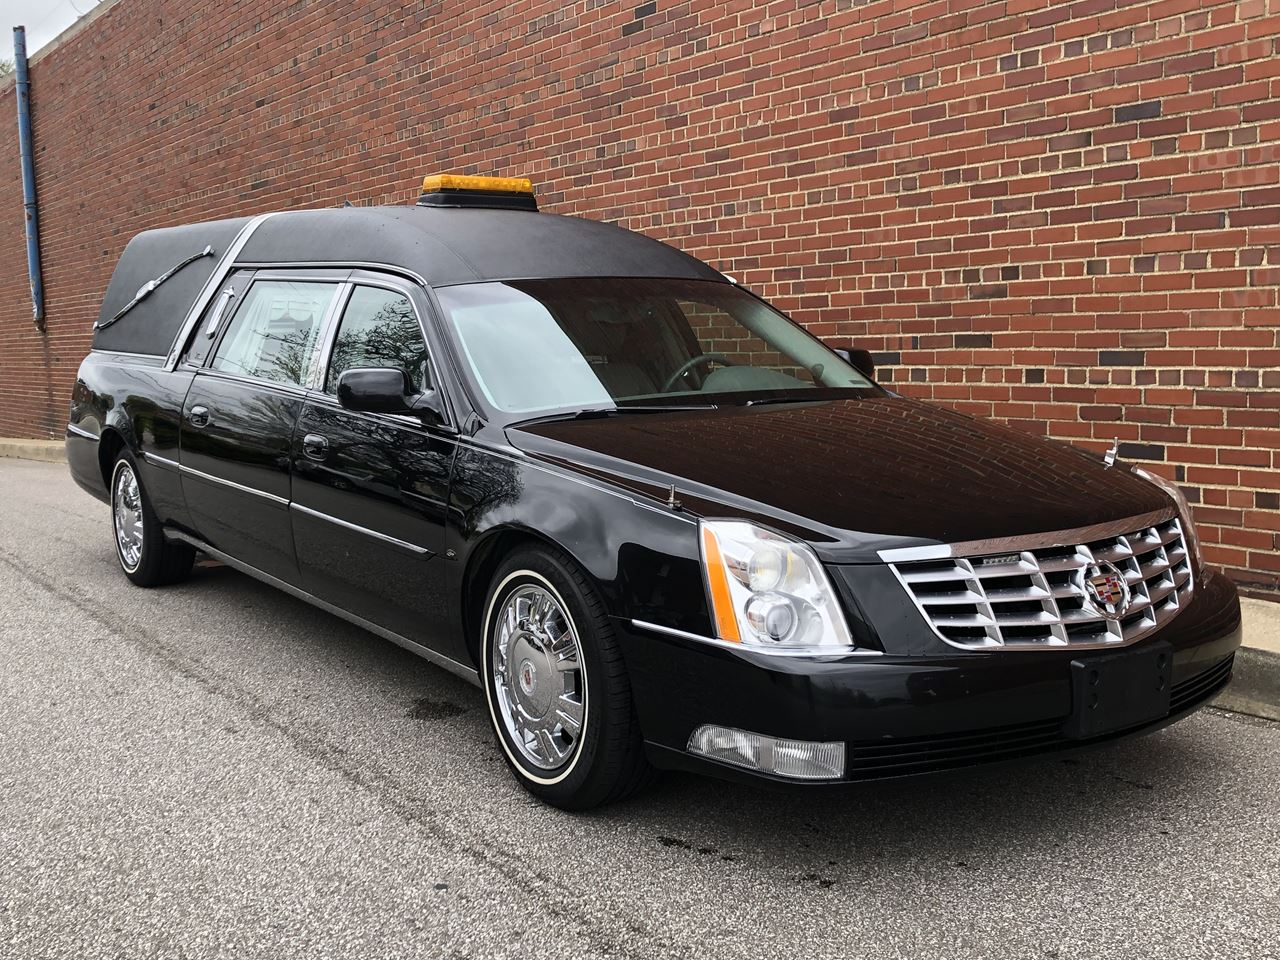 2011 Cadillac Eagle Kingsley Hearse 18 2